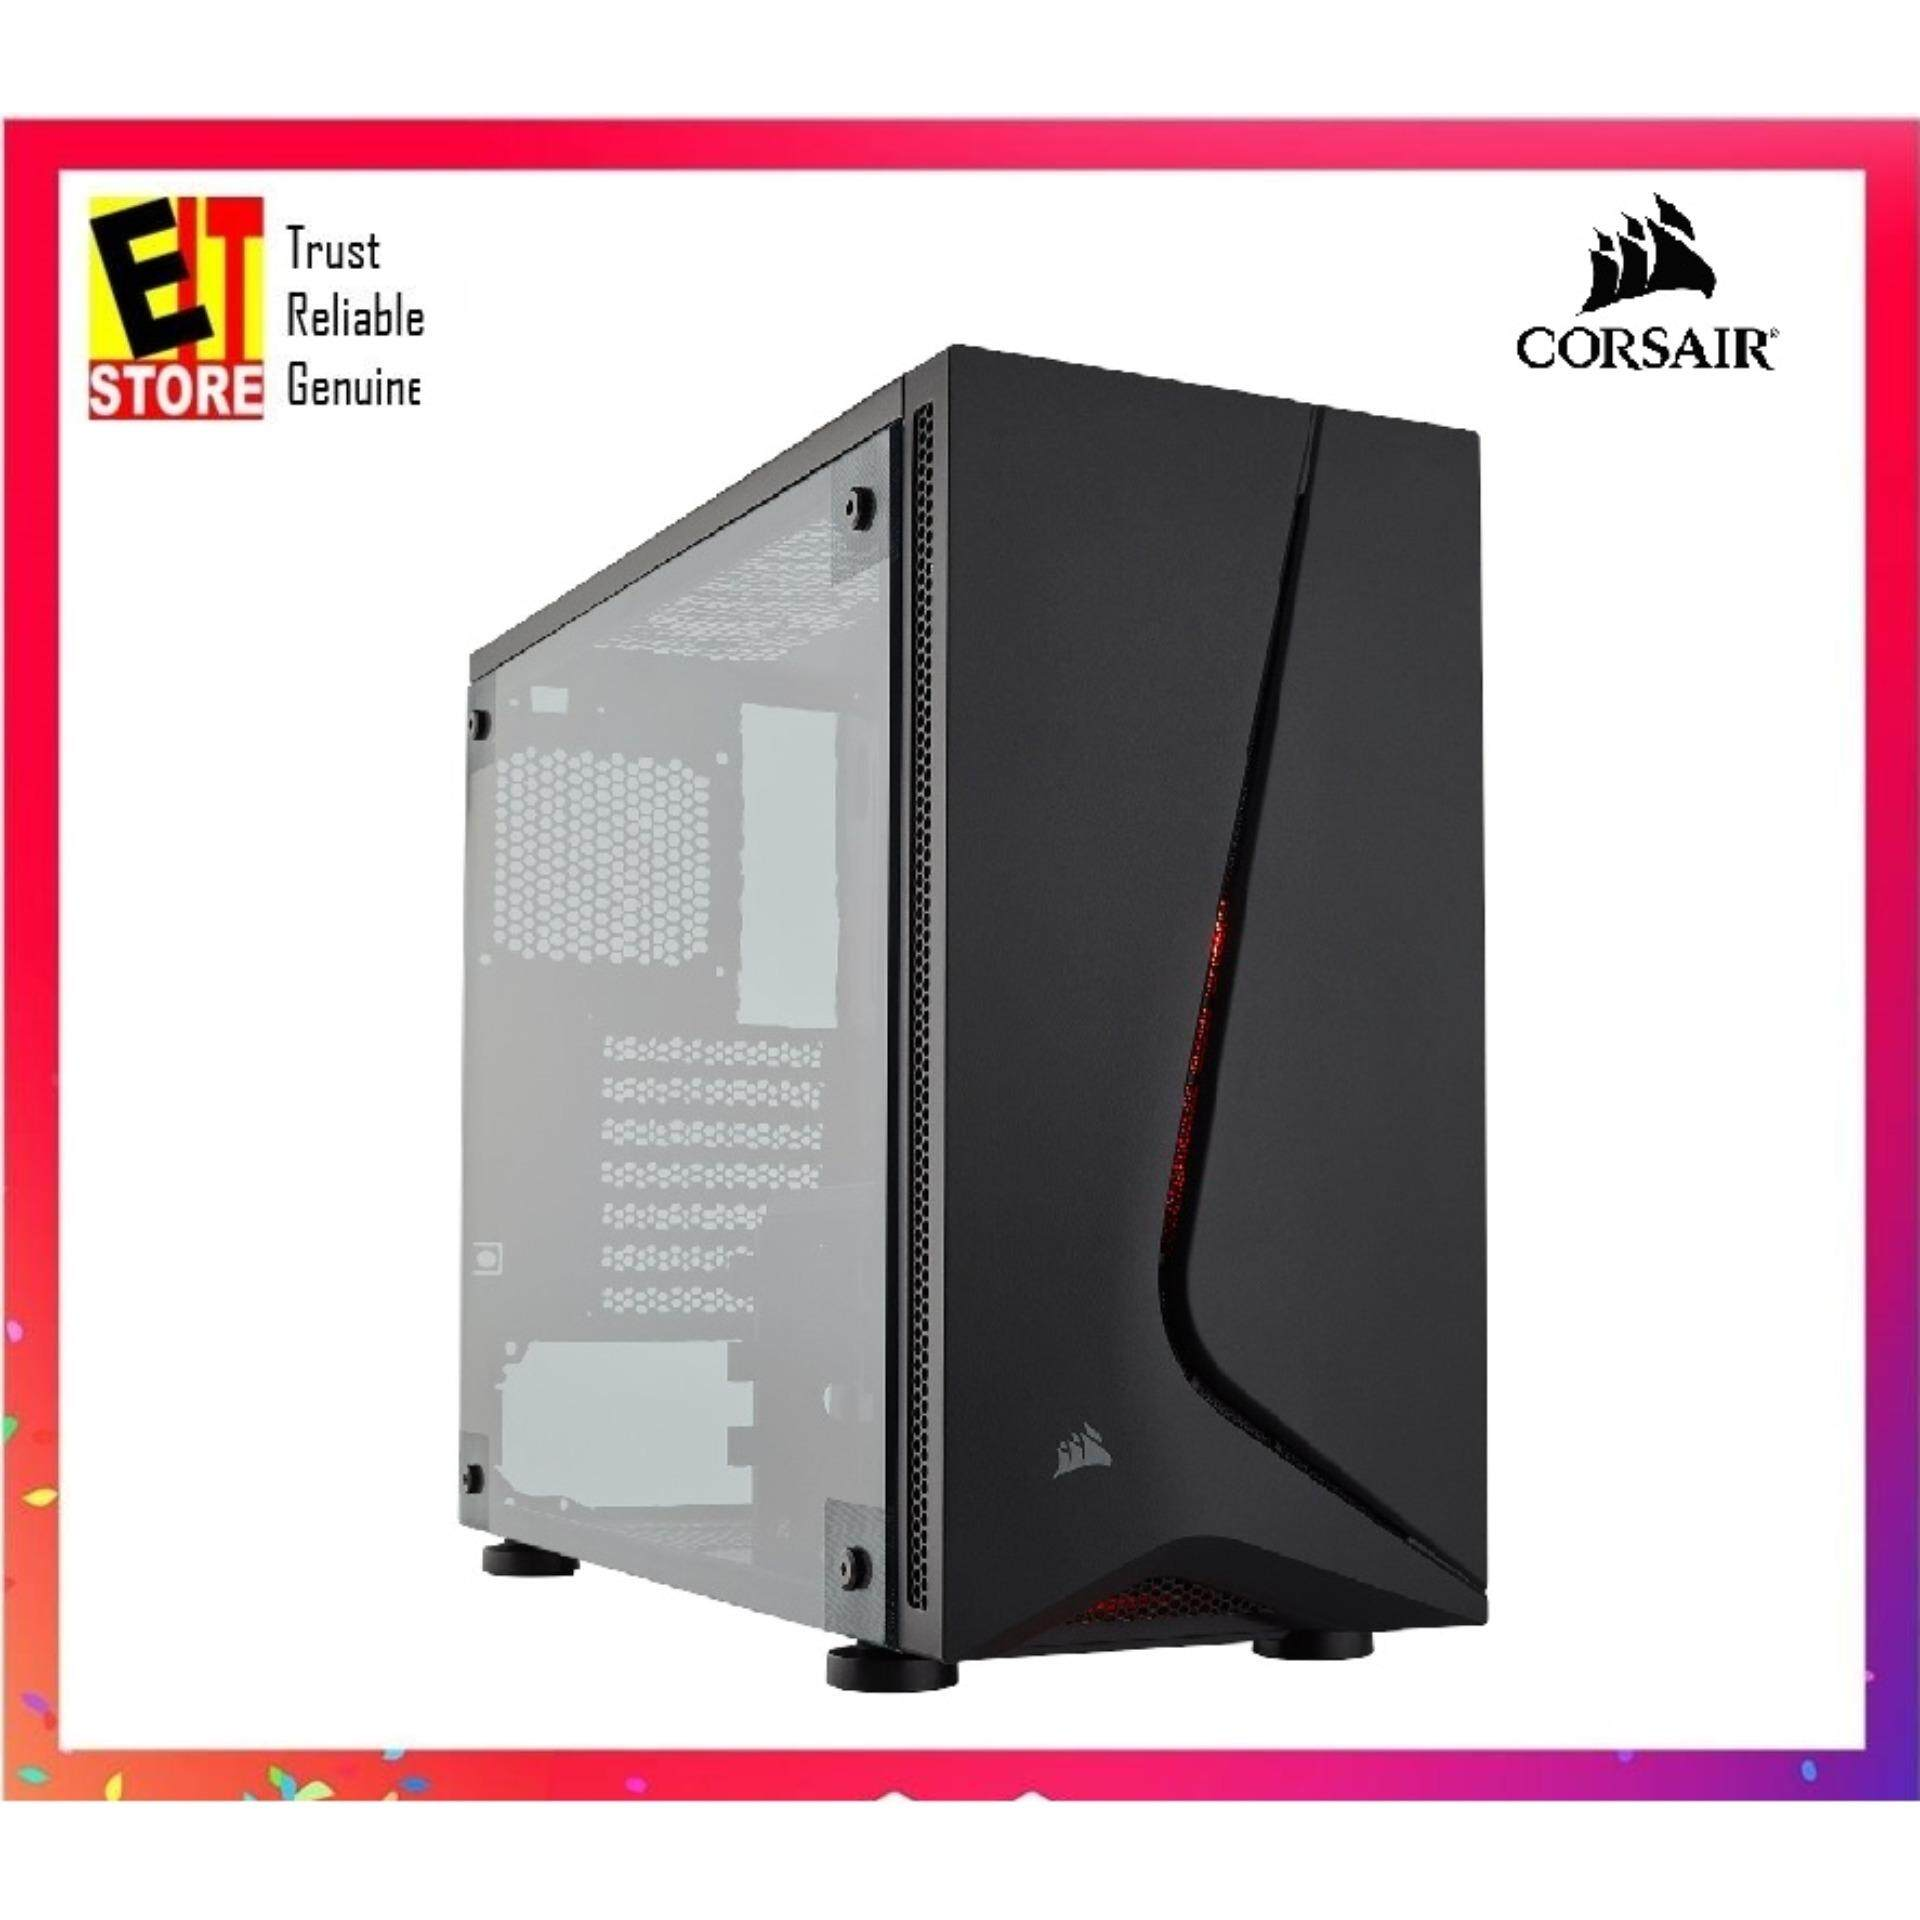 CORSAIR CARBIDE SERIES SPEC-05 MID-TOWER GAMING CASE — BLACK (CC-9011138-WW) Malaysia